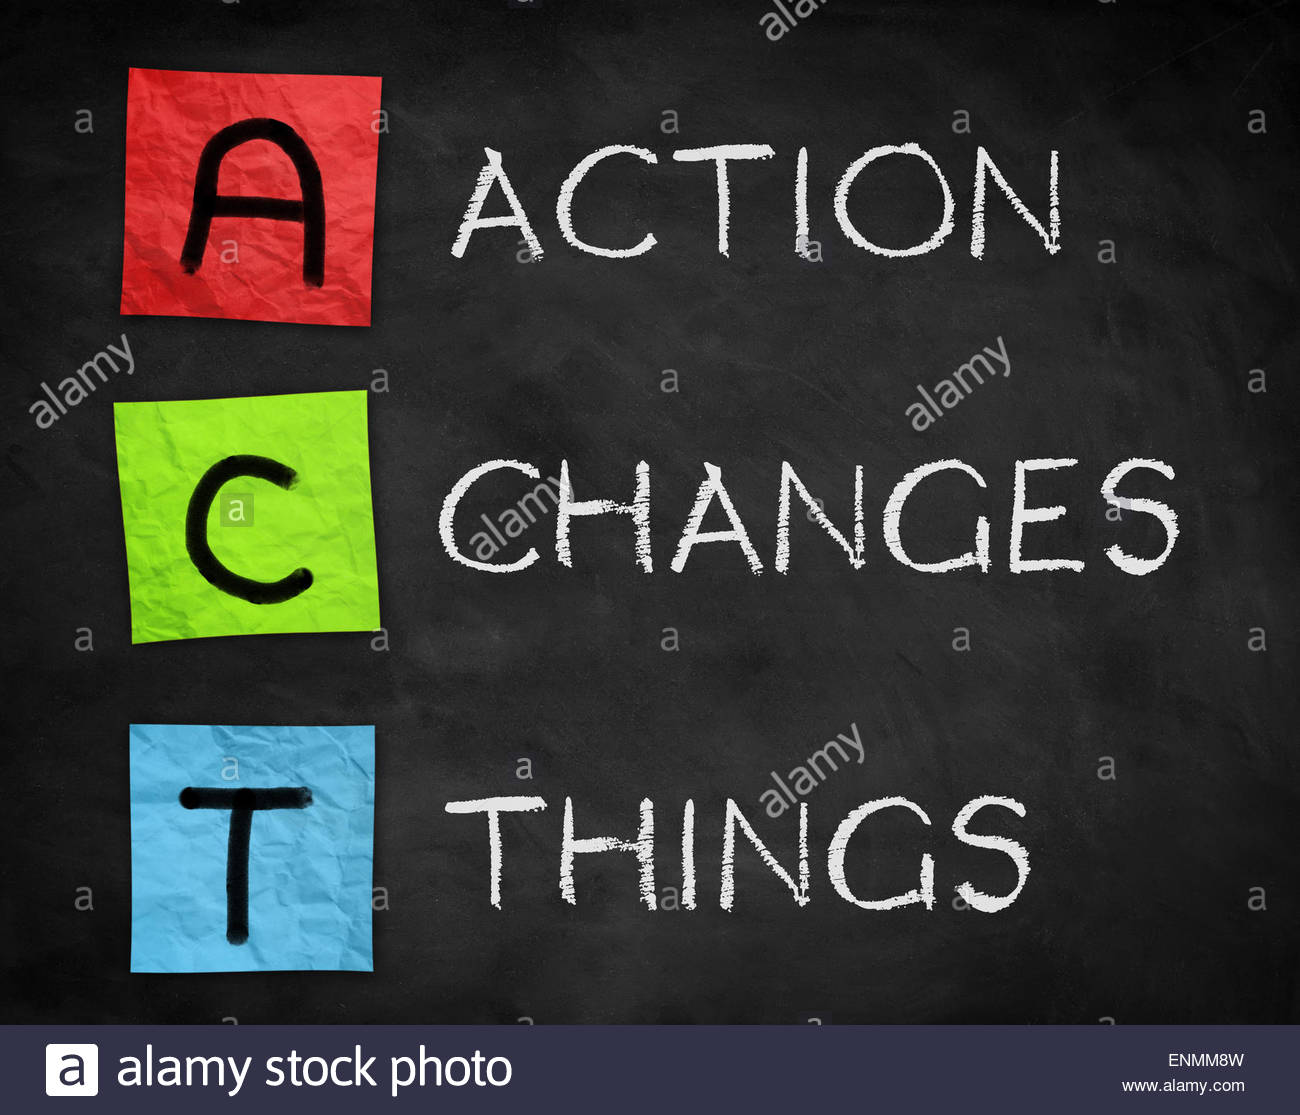 Action change les choses Photo Stock